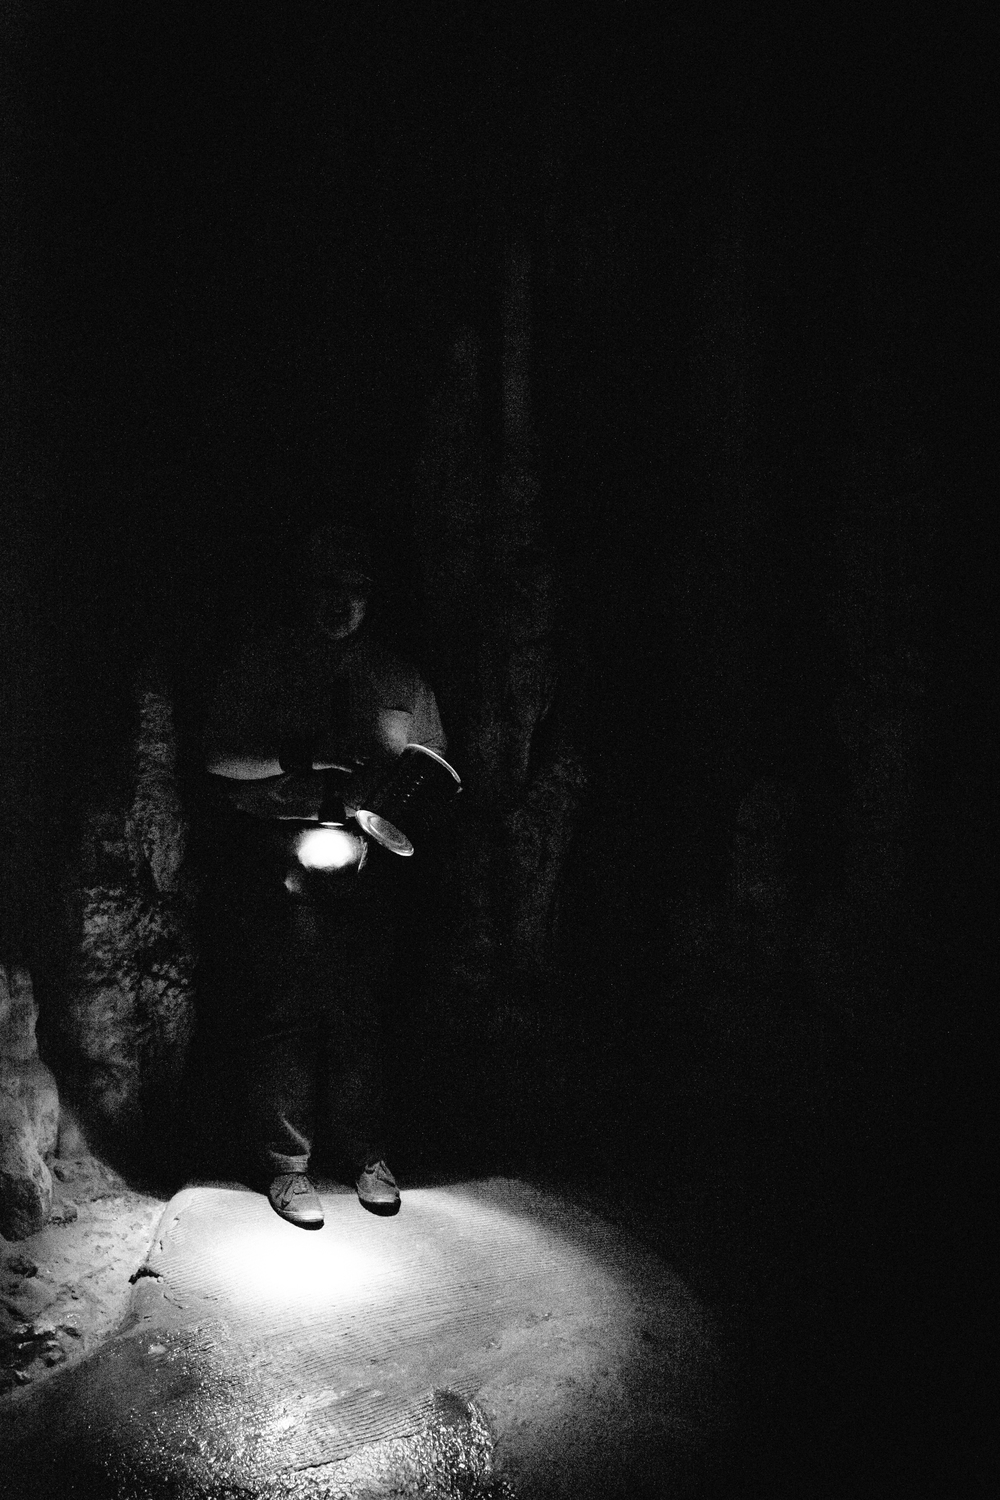 Tours by candlelight are no longer possible, but our guide gave us a great demonstration on how eerie they were.